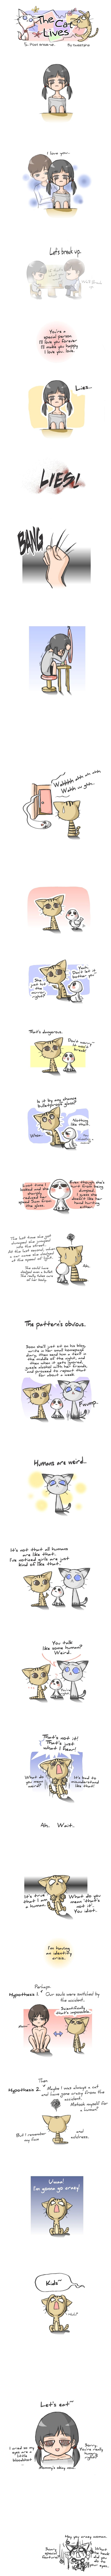 The Cat Lives 5 Page 1